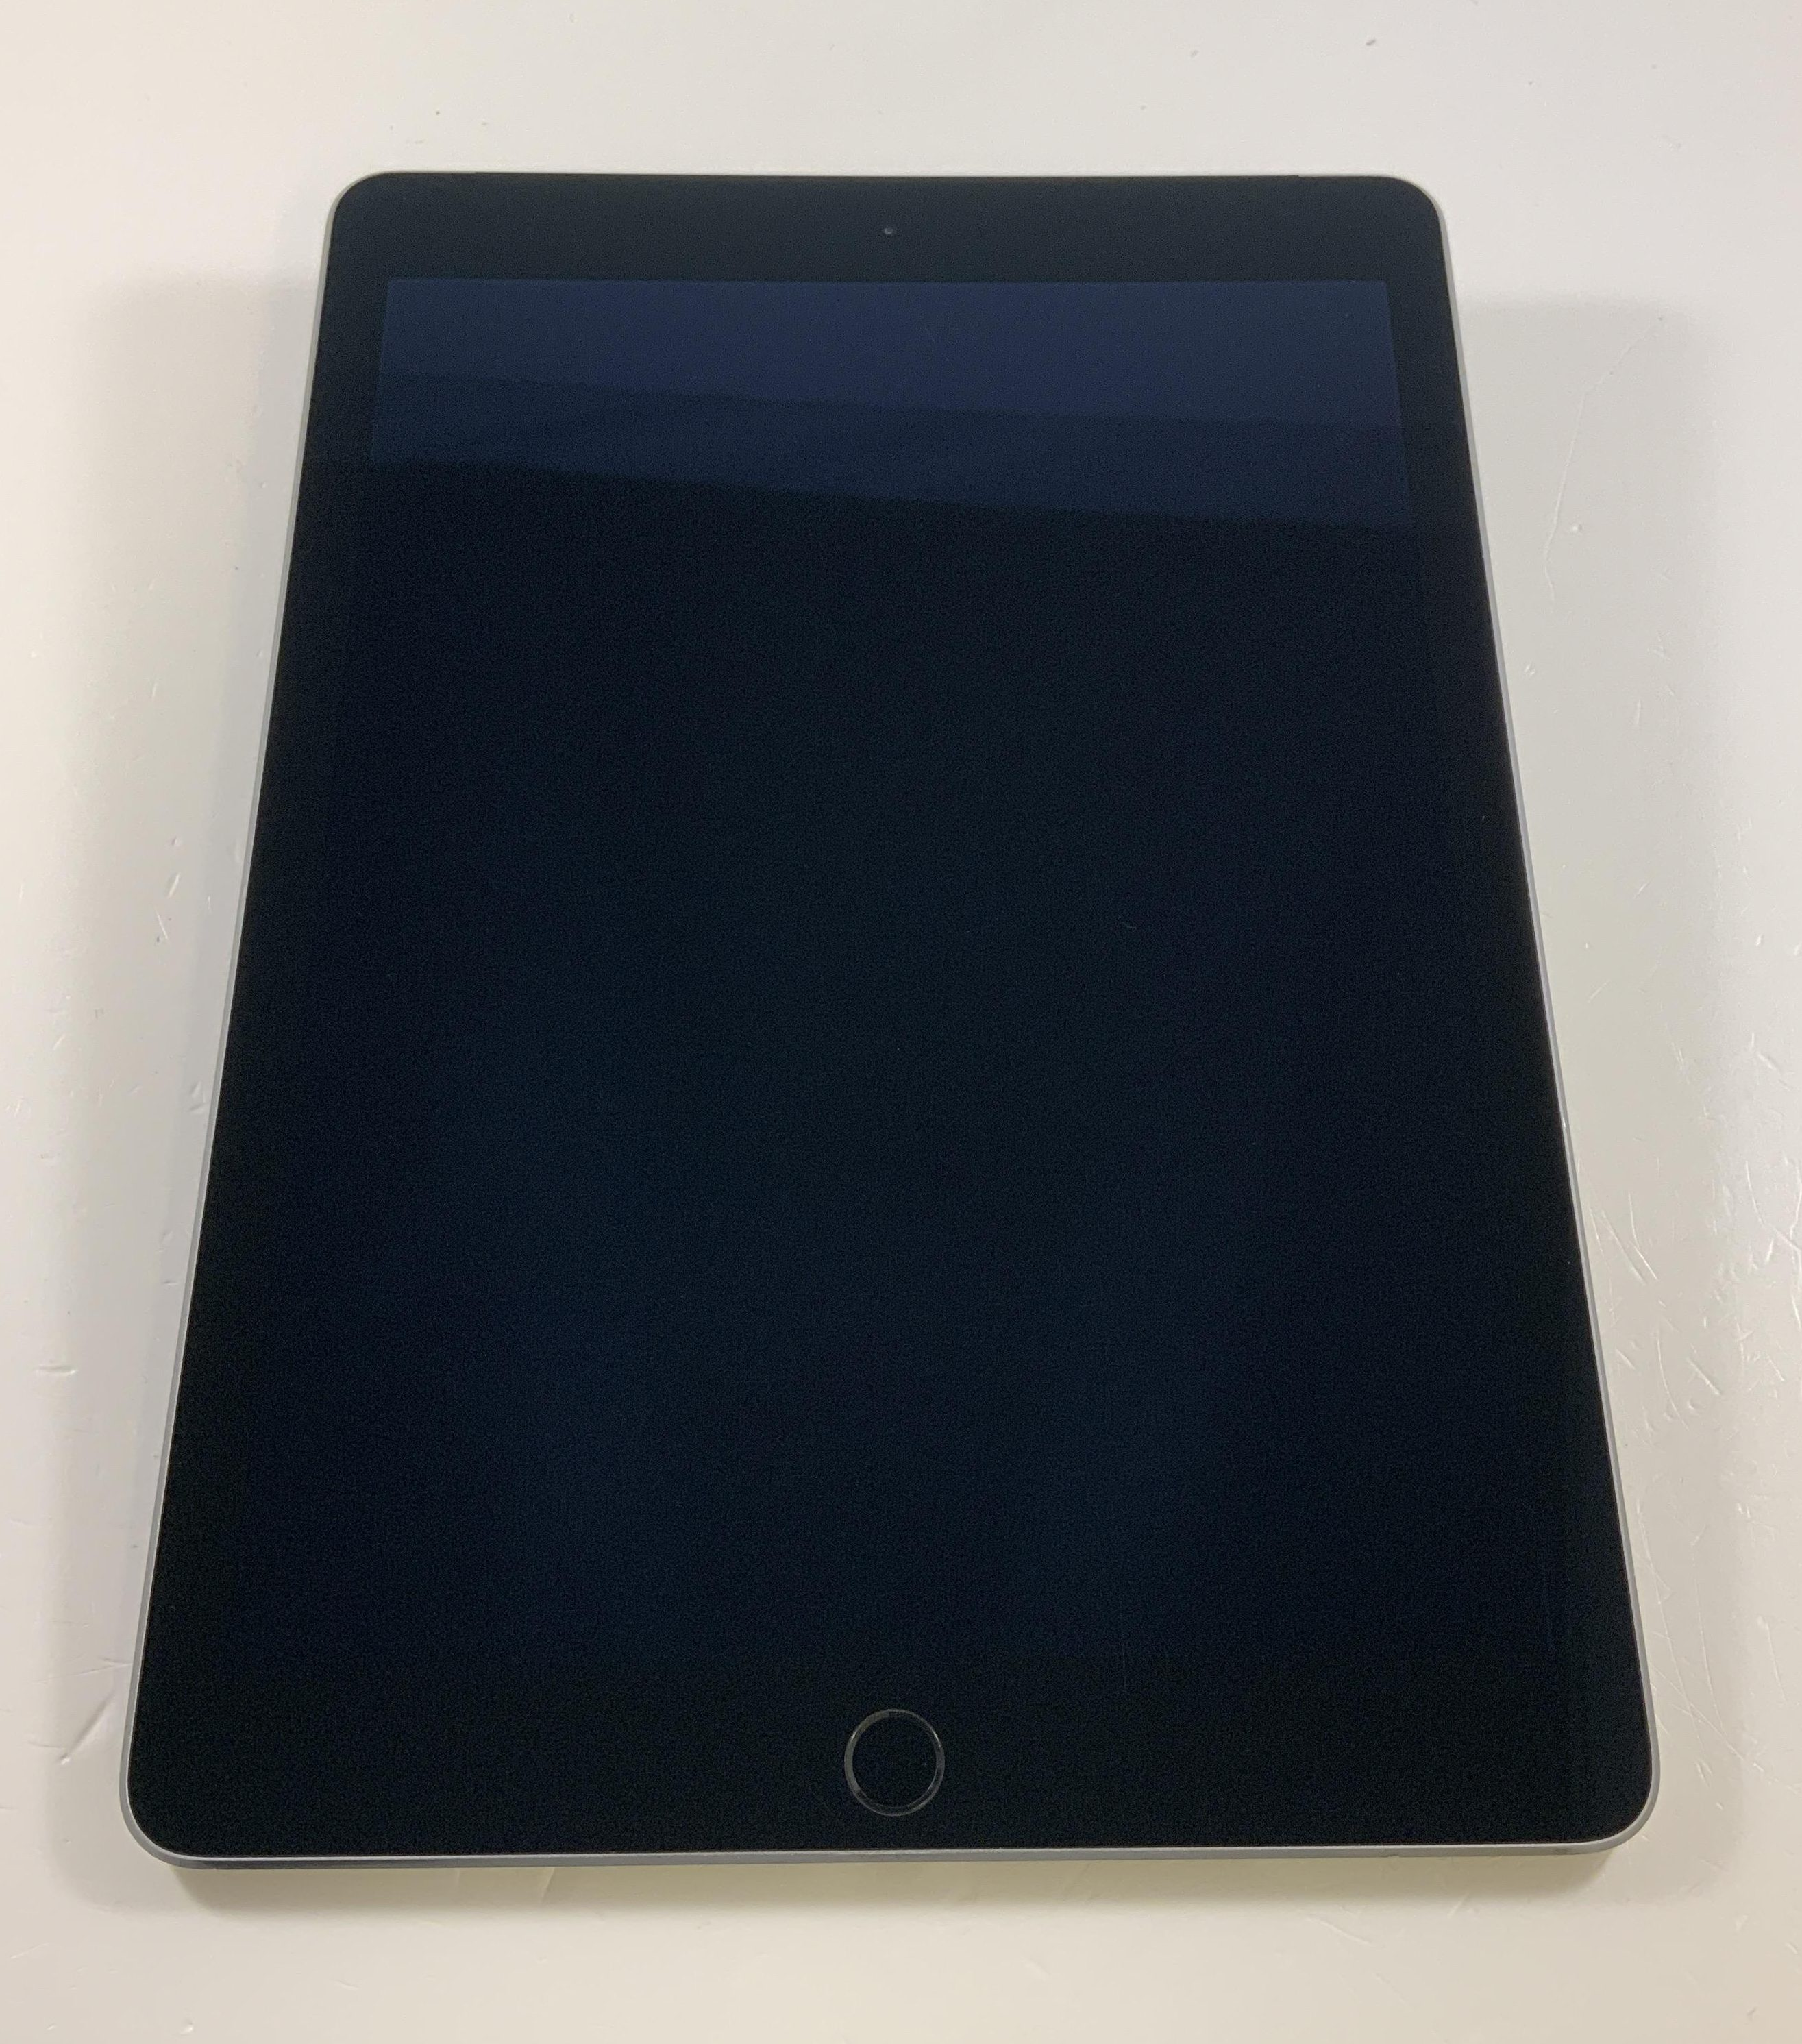 iPad Air 2 Wi-Fi + Cellular 64GB, 64GB, Space Gray, obraz 1